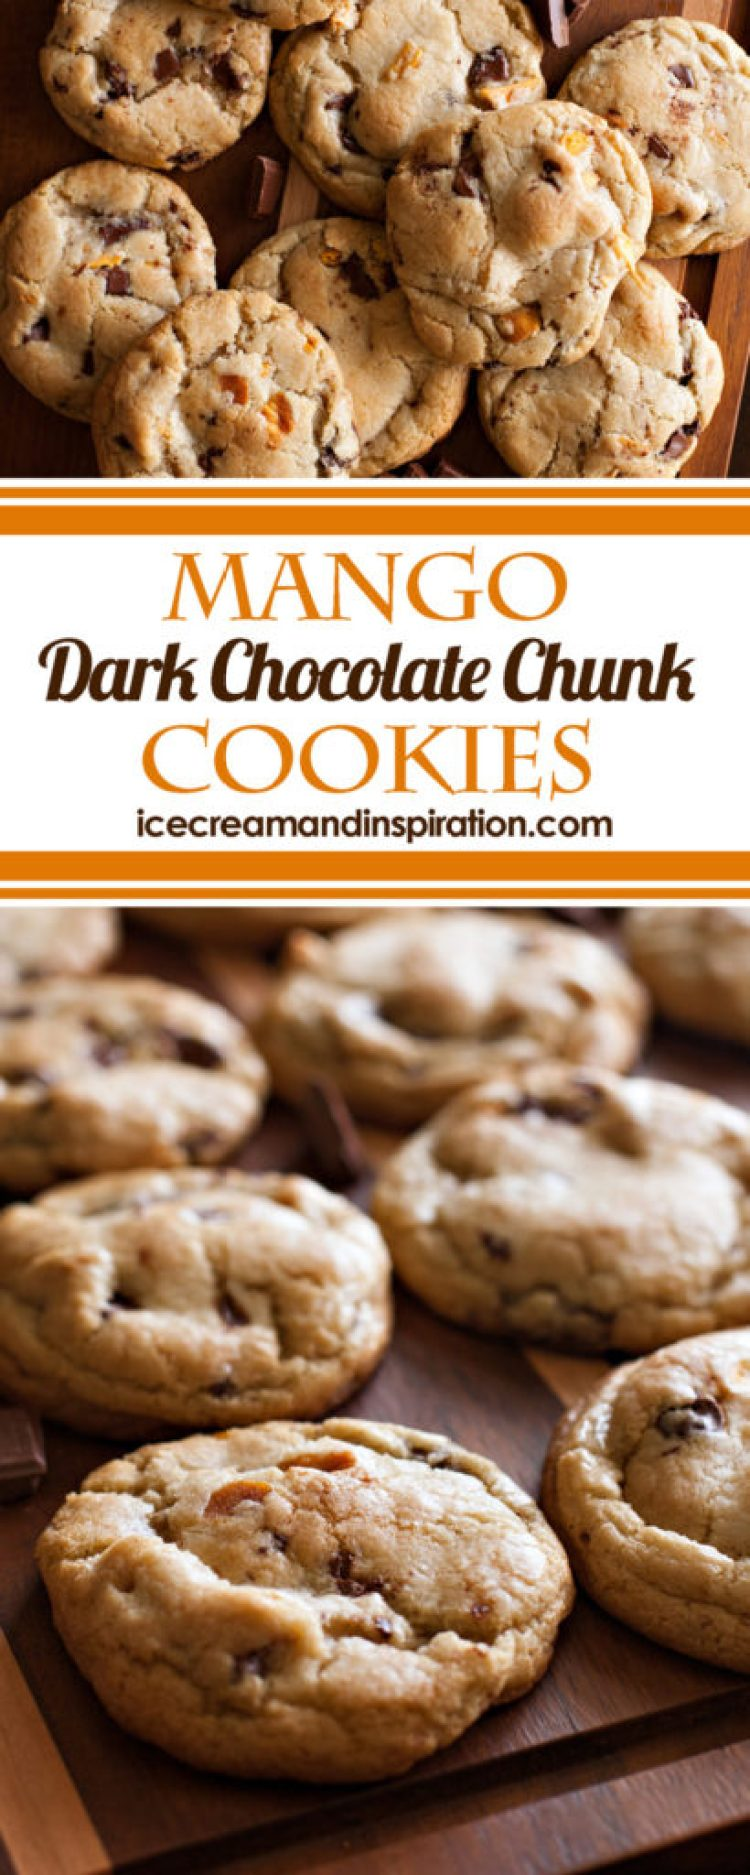 Chewy tropical mango and dark chocolate in a citrus dough make these thick, soft cookies the star of any party! Just like the RubySnap cookies. What is the secret to making these cookies so thick and soft? Read the post to find out!